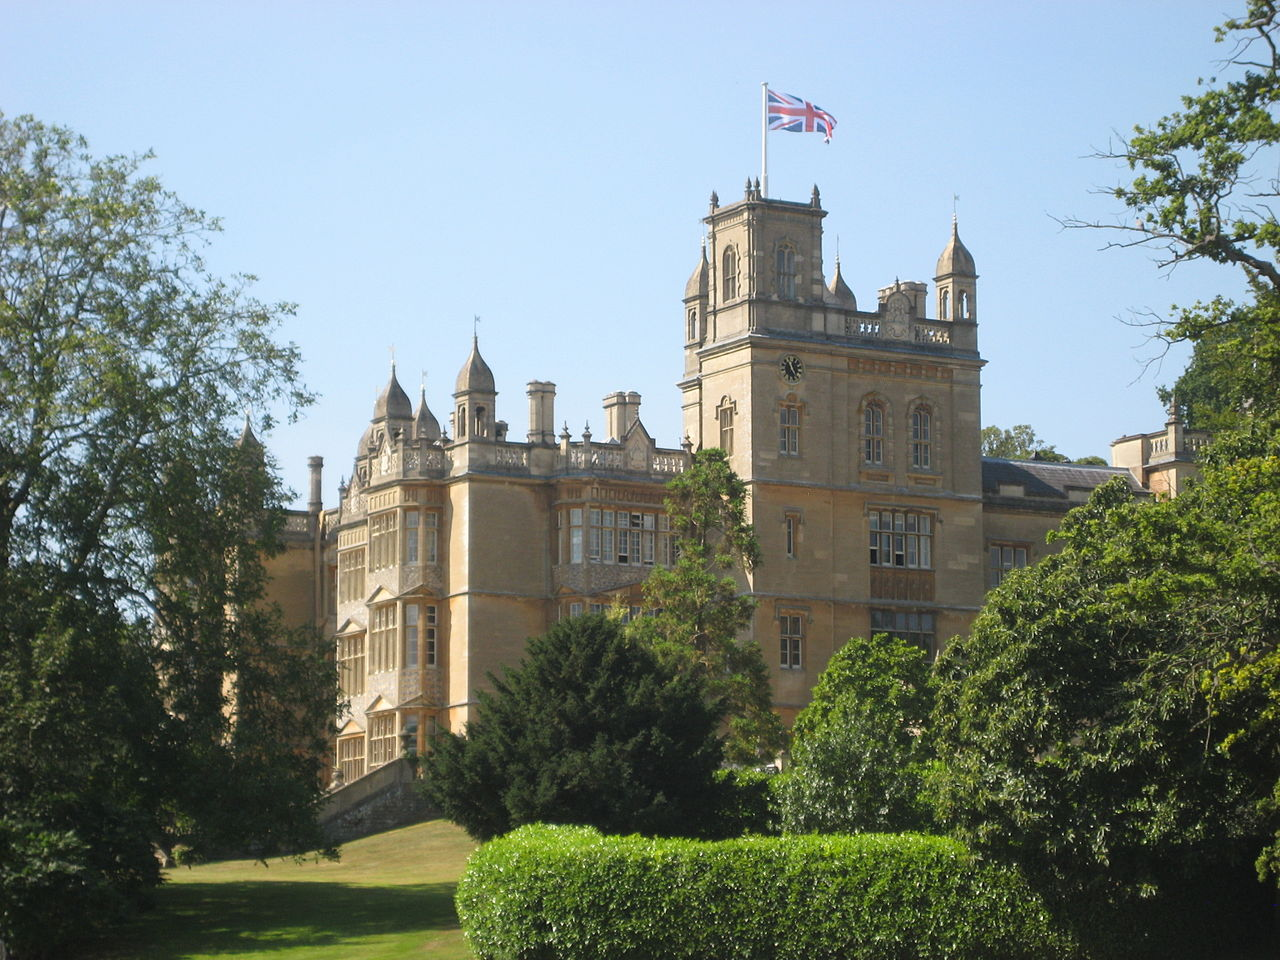 The Englefield Estate, which served as the X-Mansion in X-Men: First Class